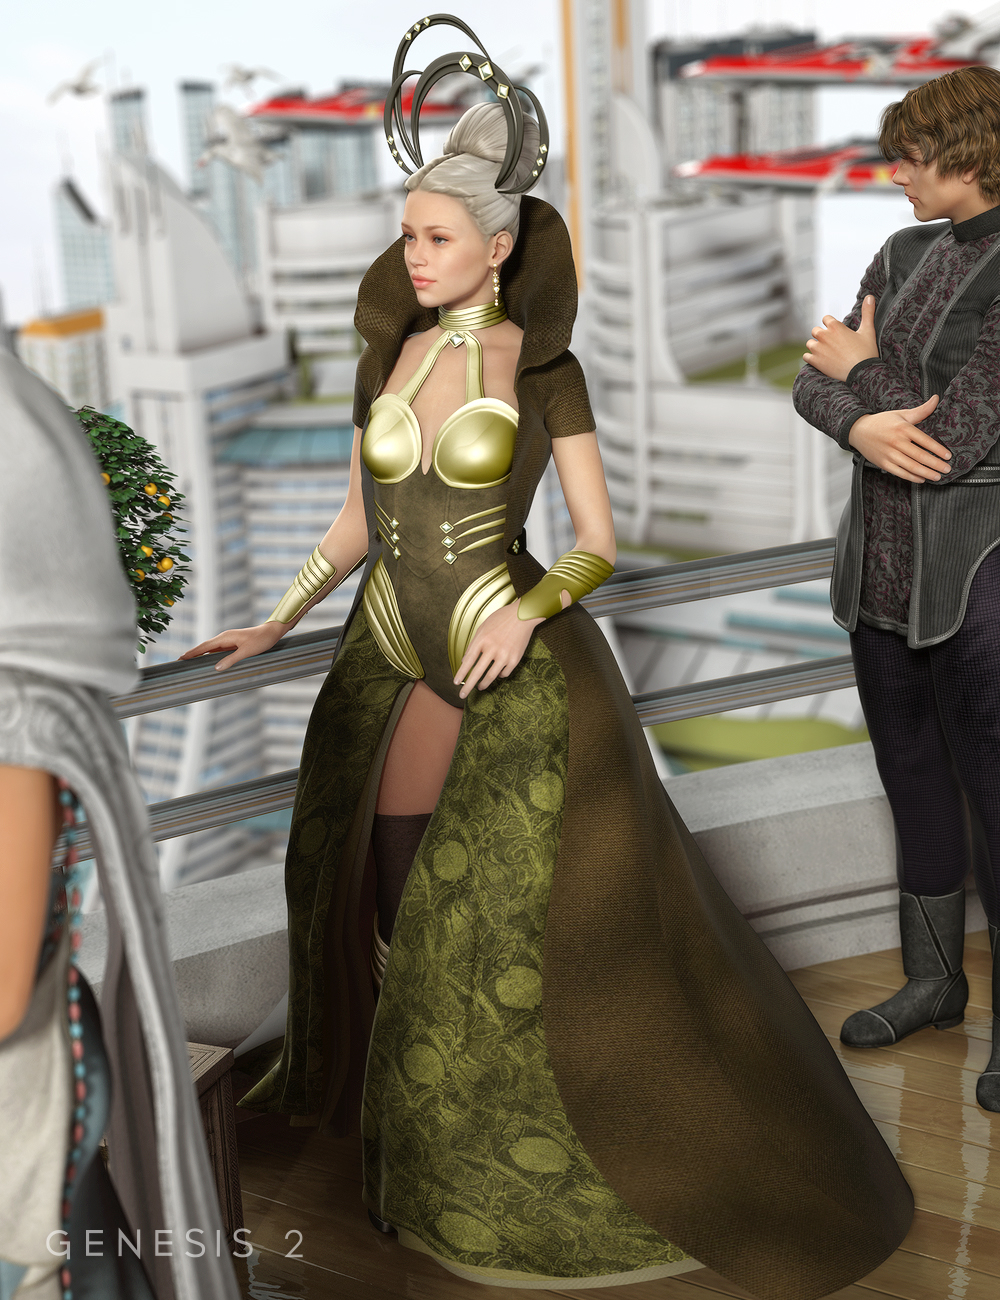 GIS Empress for Genesis 2 Female(s) by: Ravenhair, 3D Models by Daz 3D